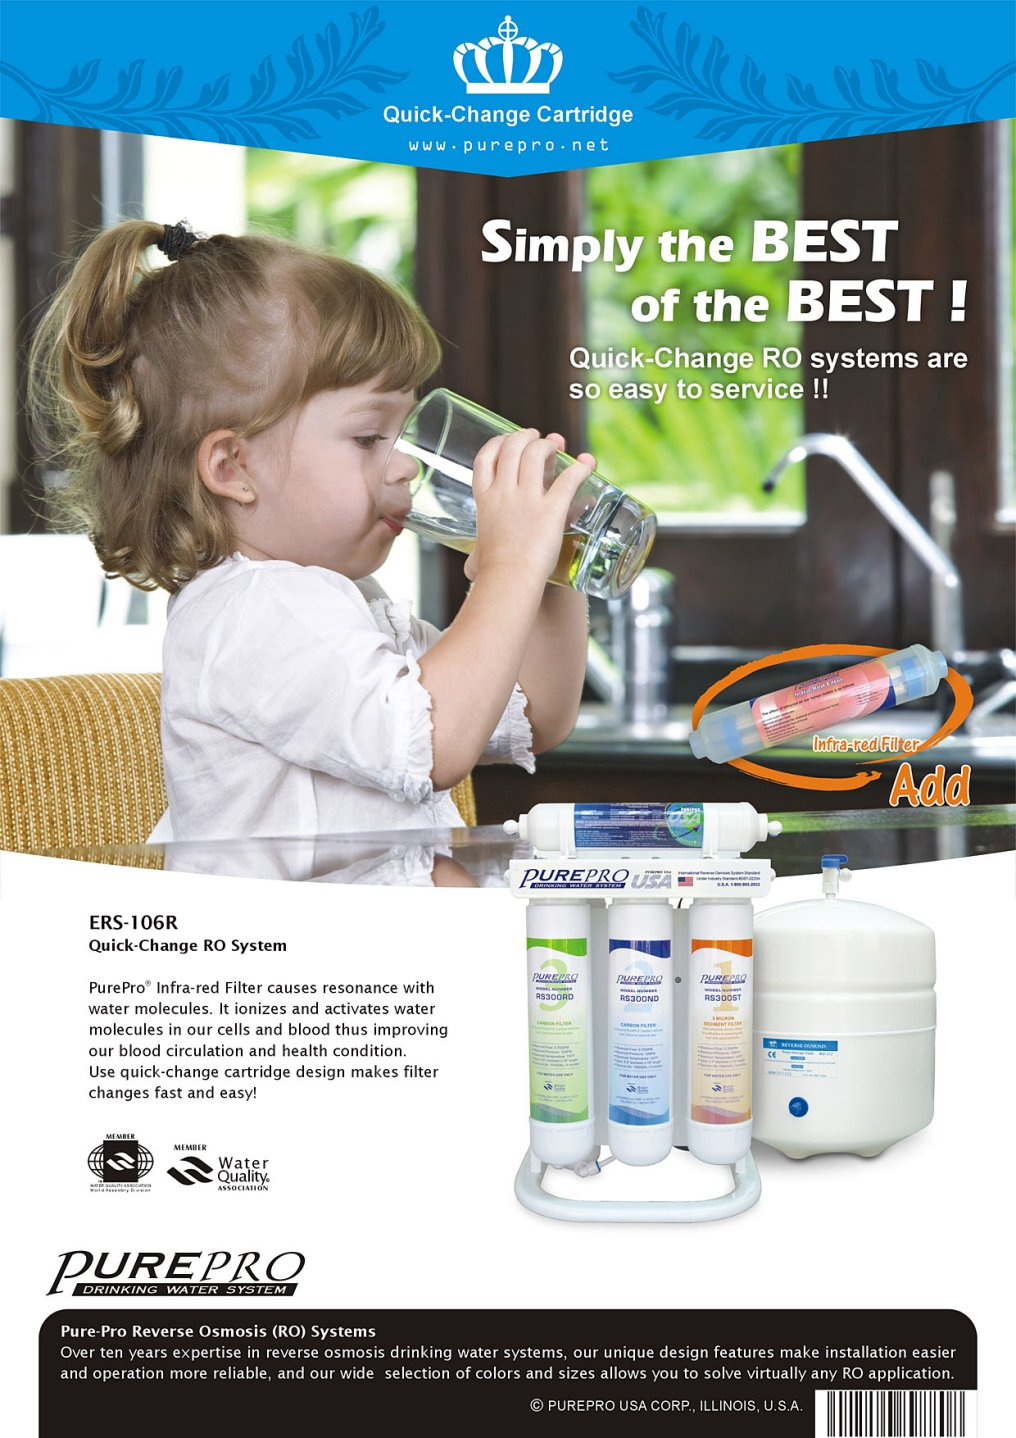 PurePro® USA ERS-106R Quick-Change Reverse Osmosis Water Filter Systems